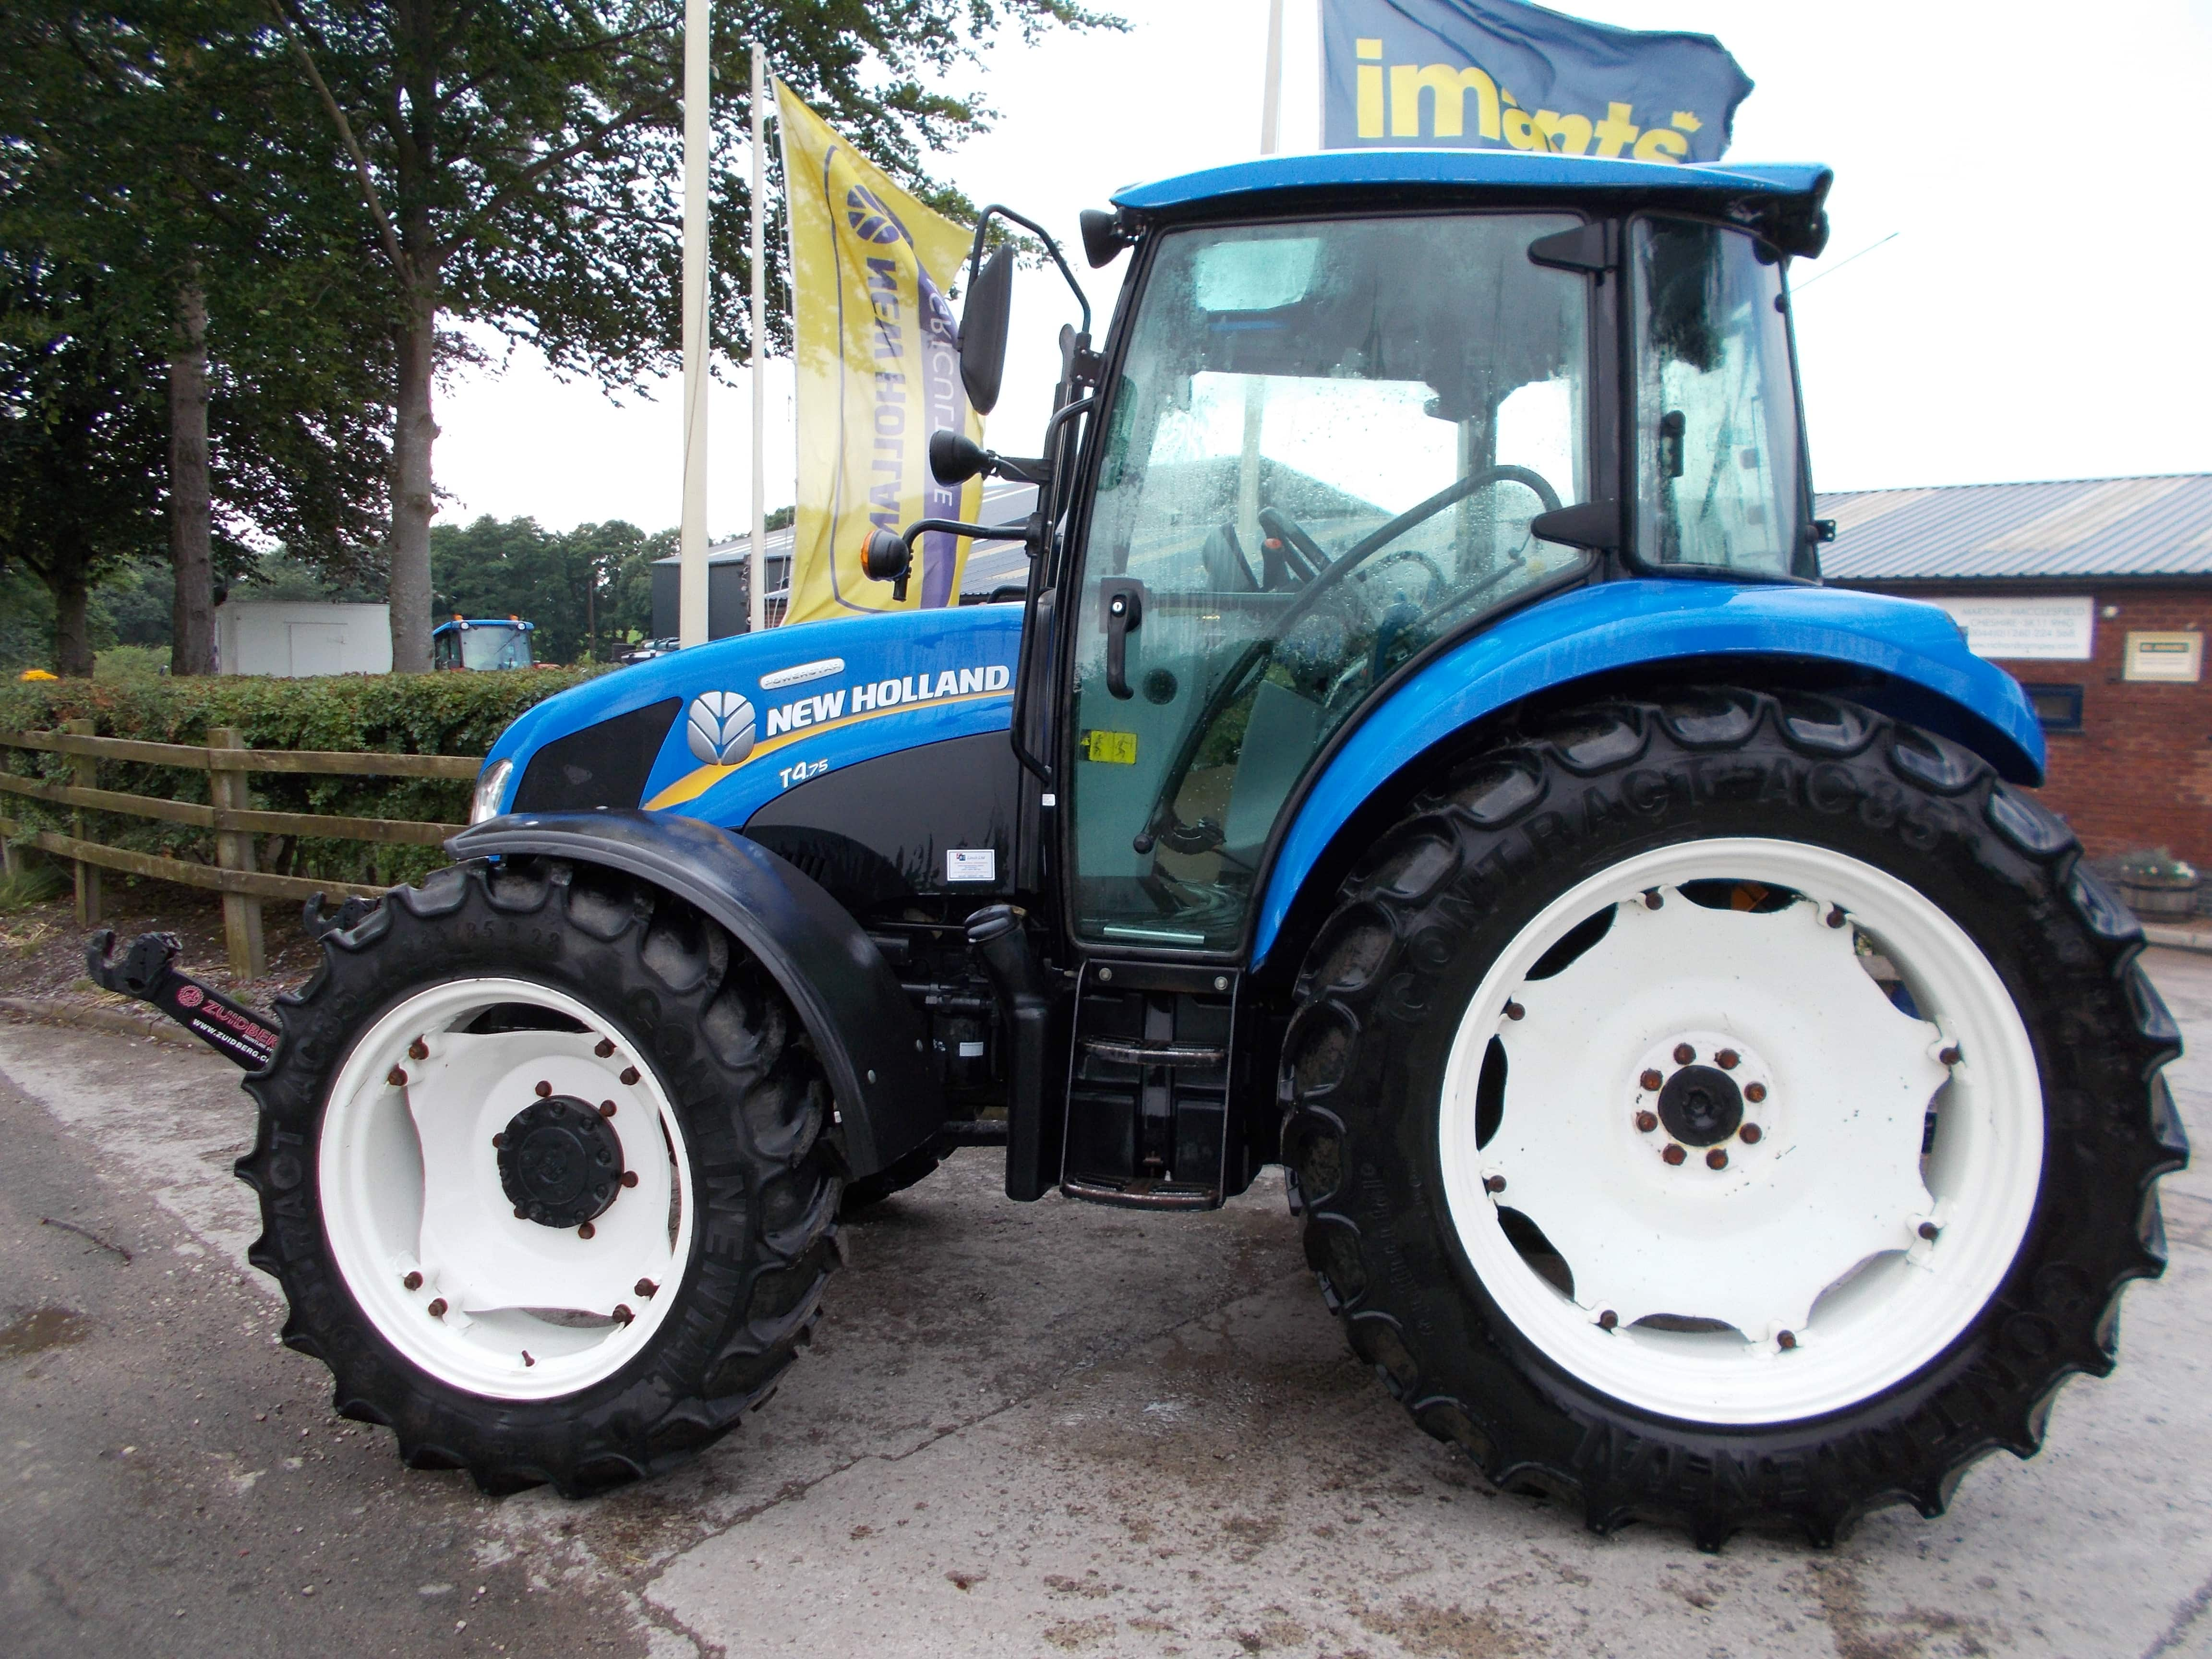 New Holland T4.75 Tractor U3717